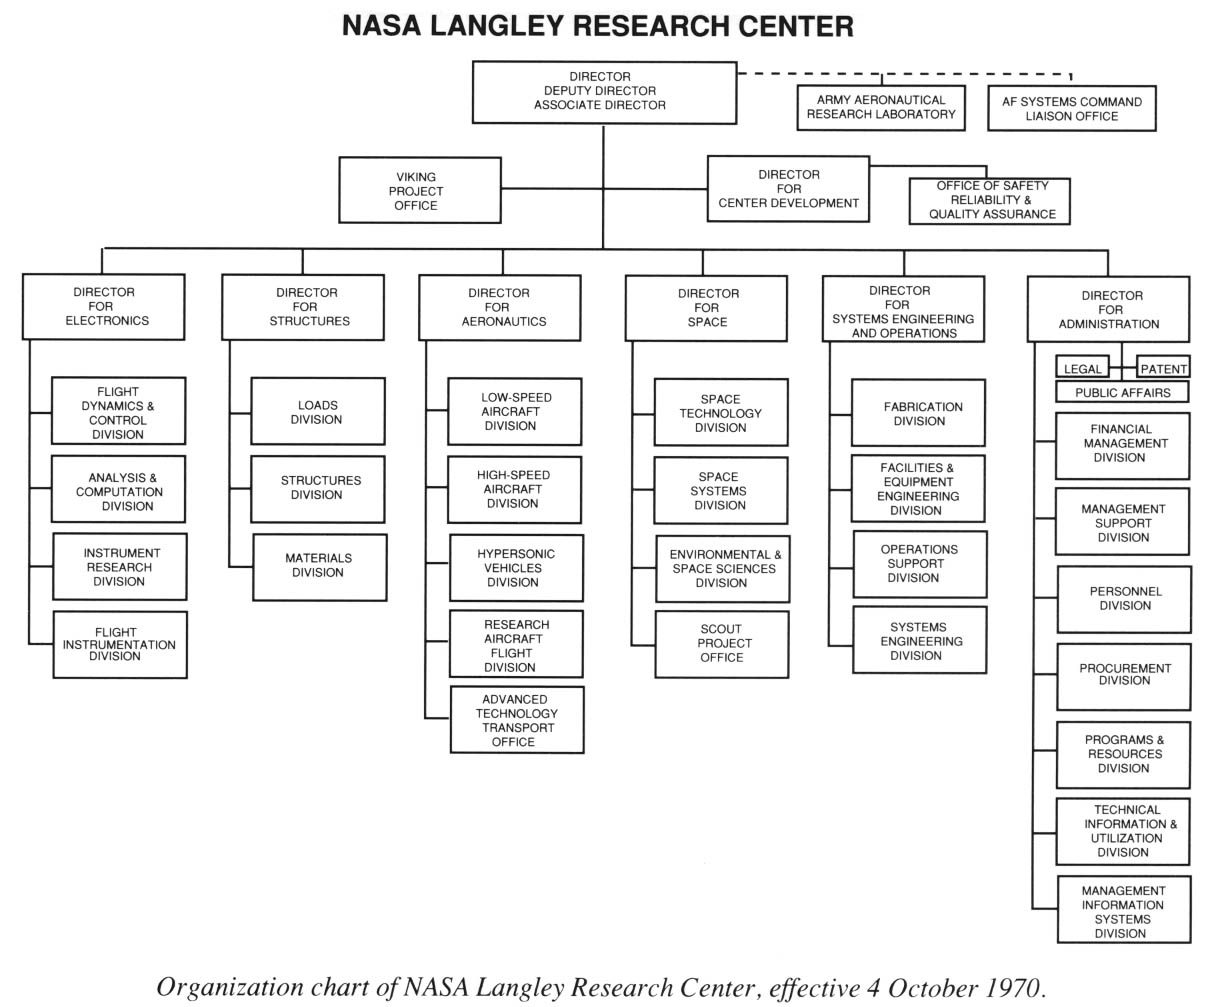 nasa hq org chart - photo #18